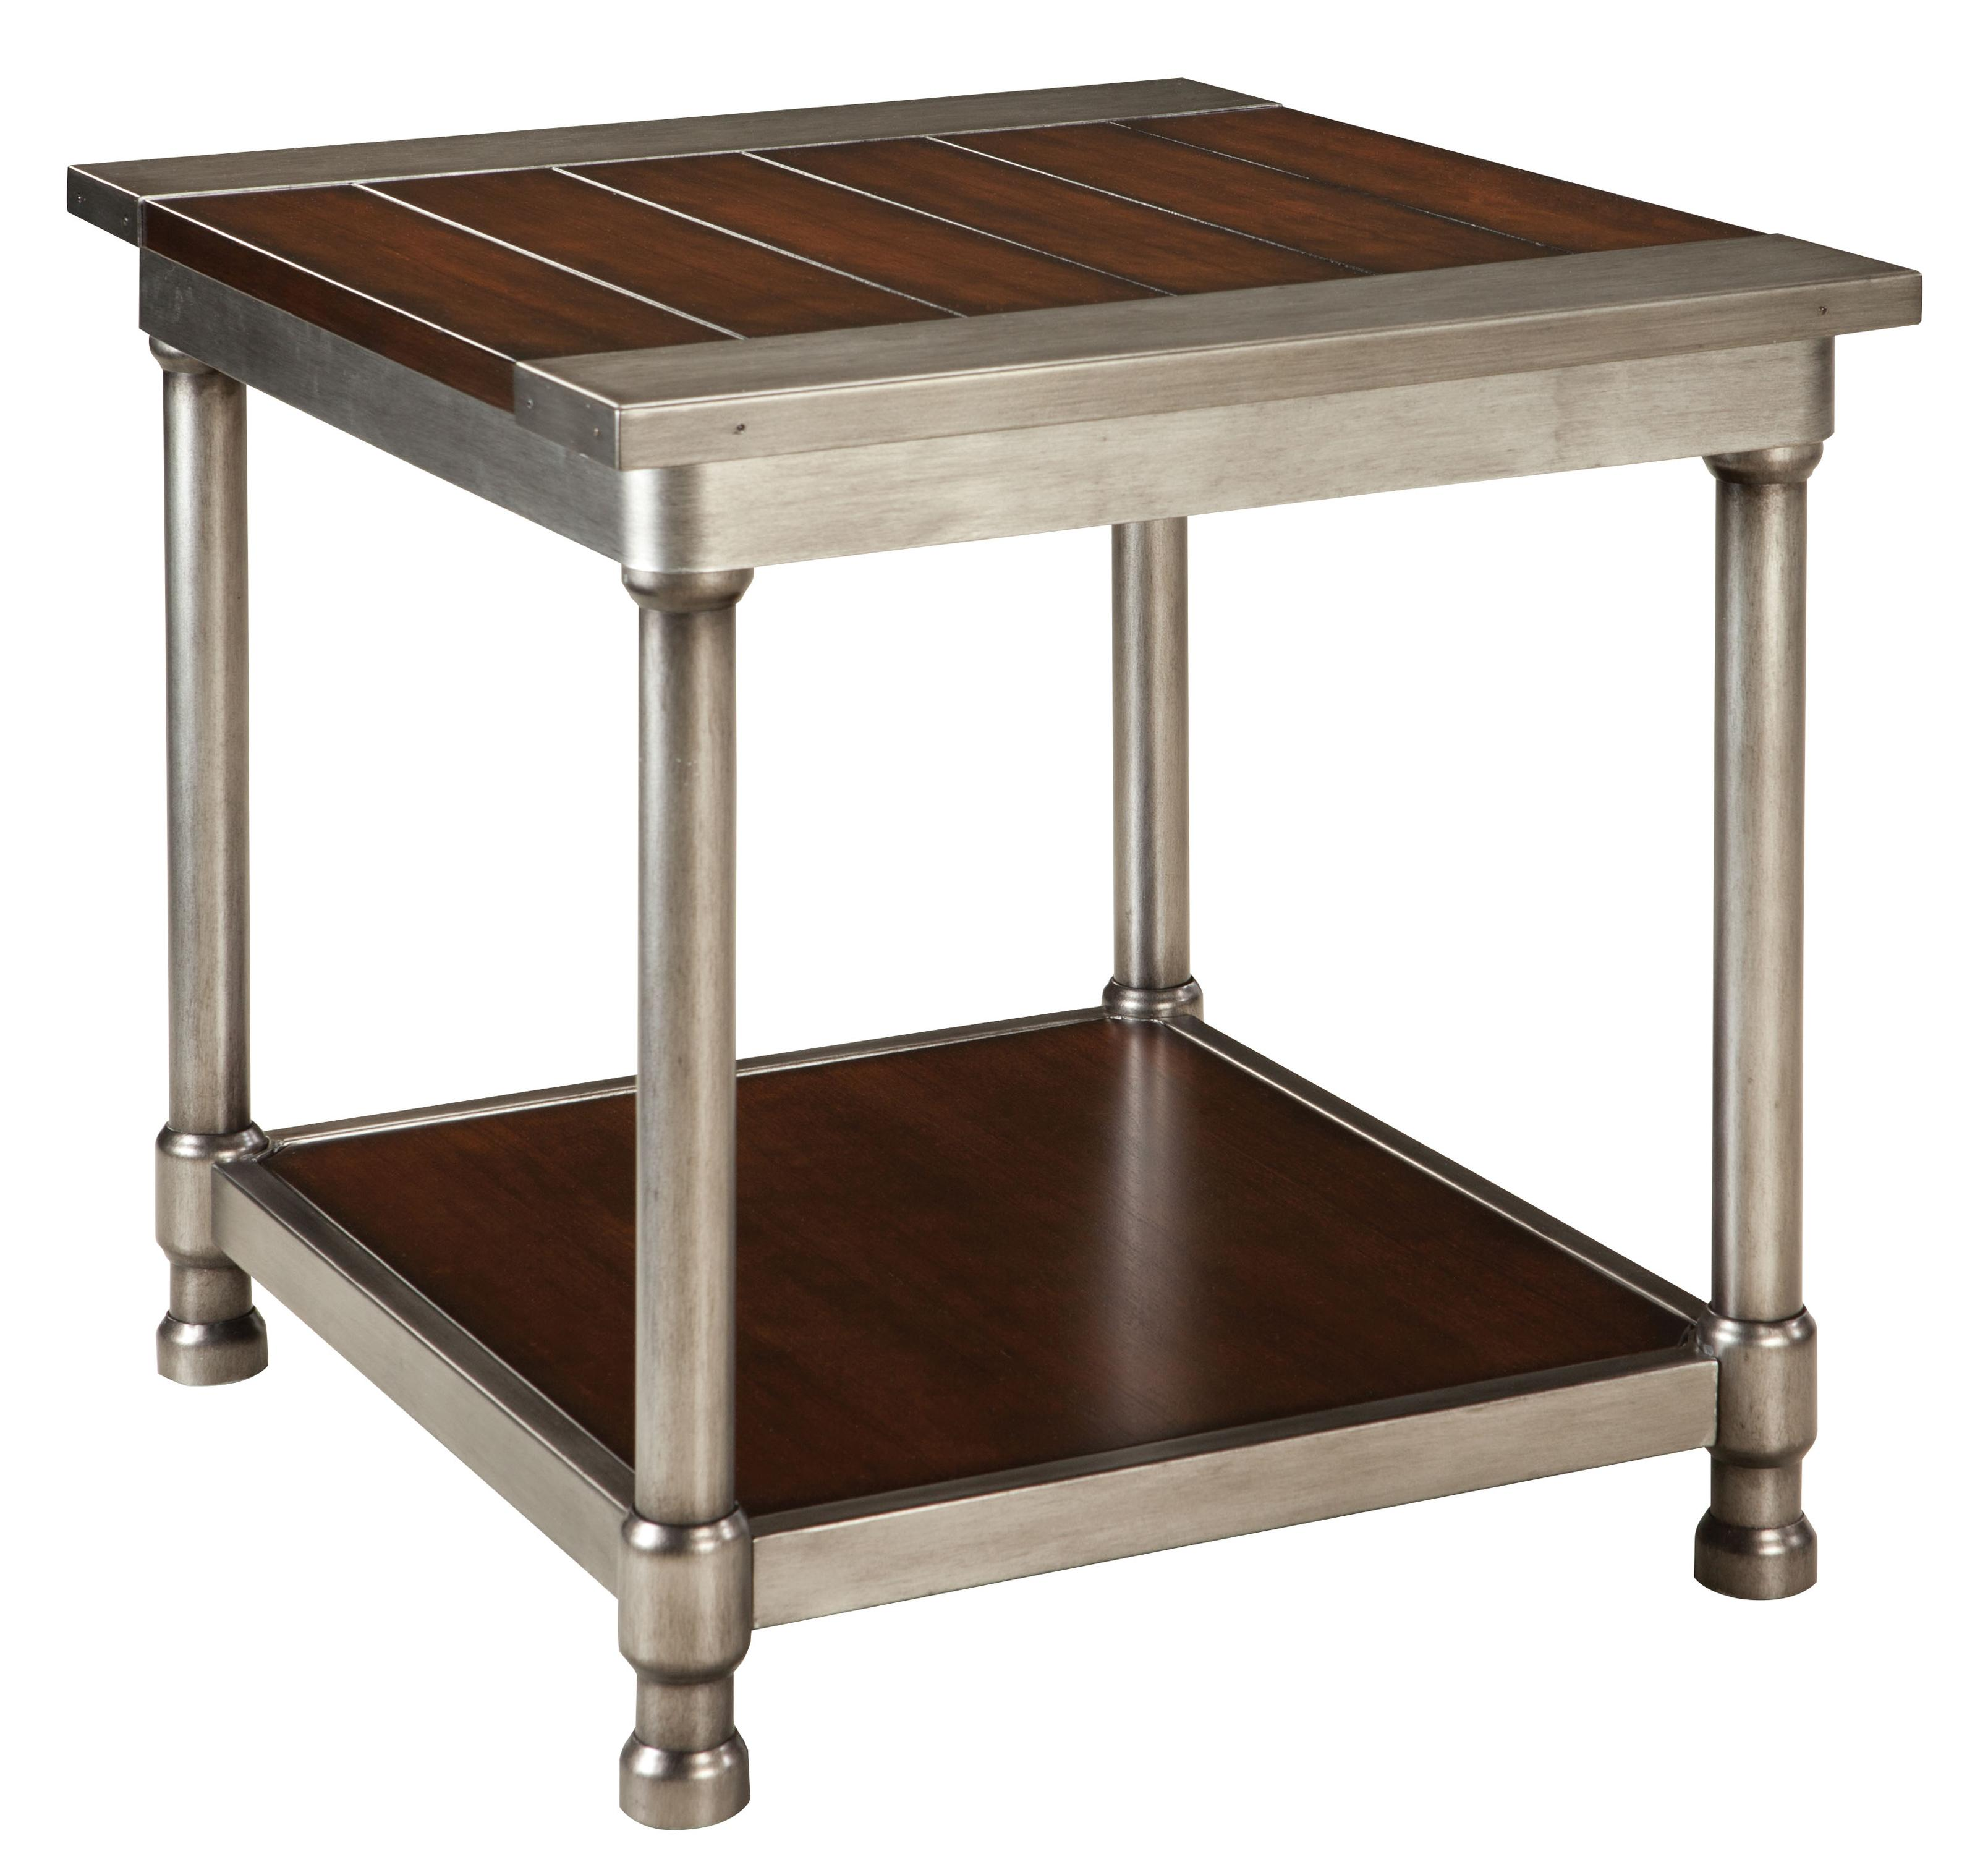 Wood And Metal Side Tables Contemporary Single Shelf End Table With Plank Style Wood